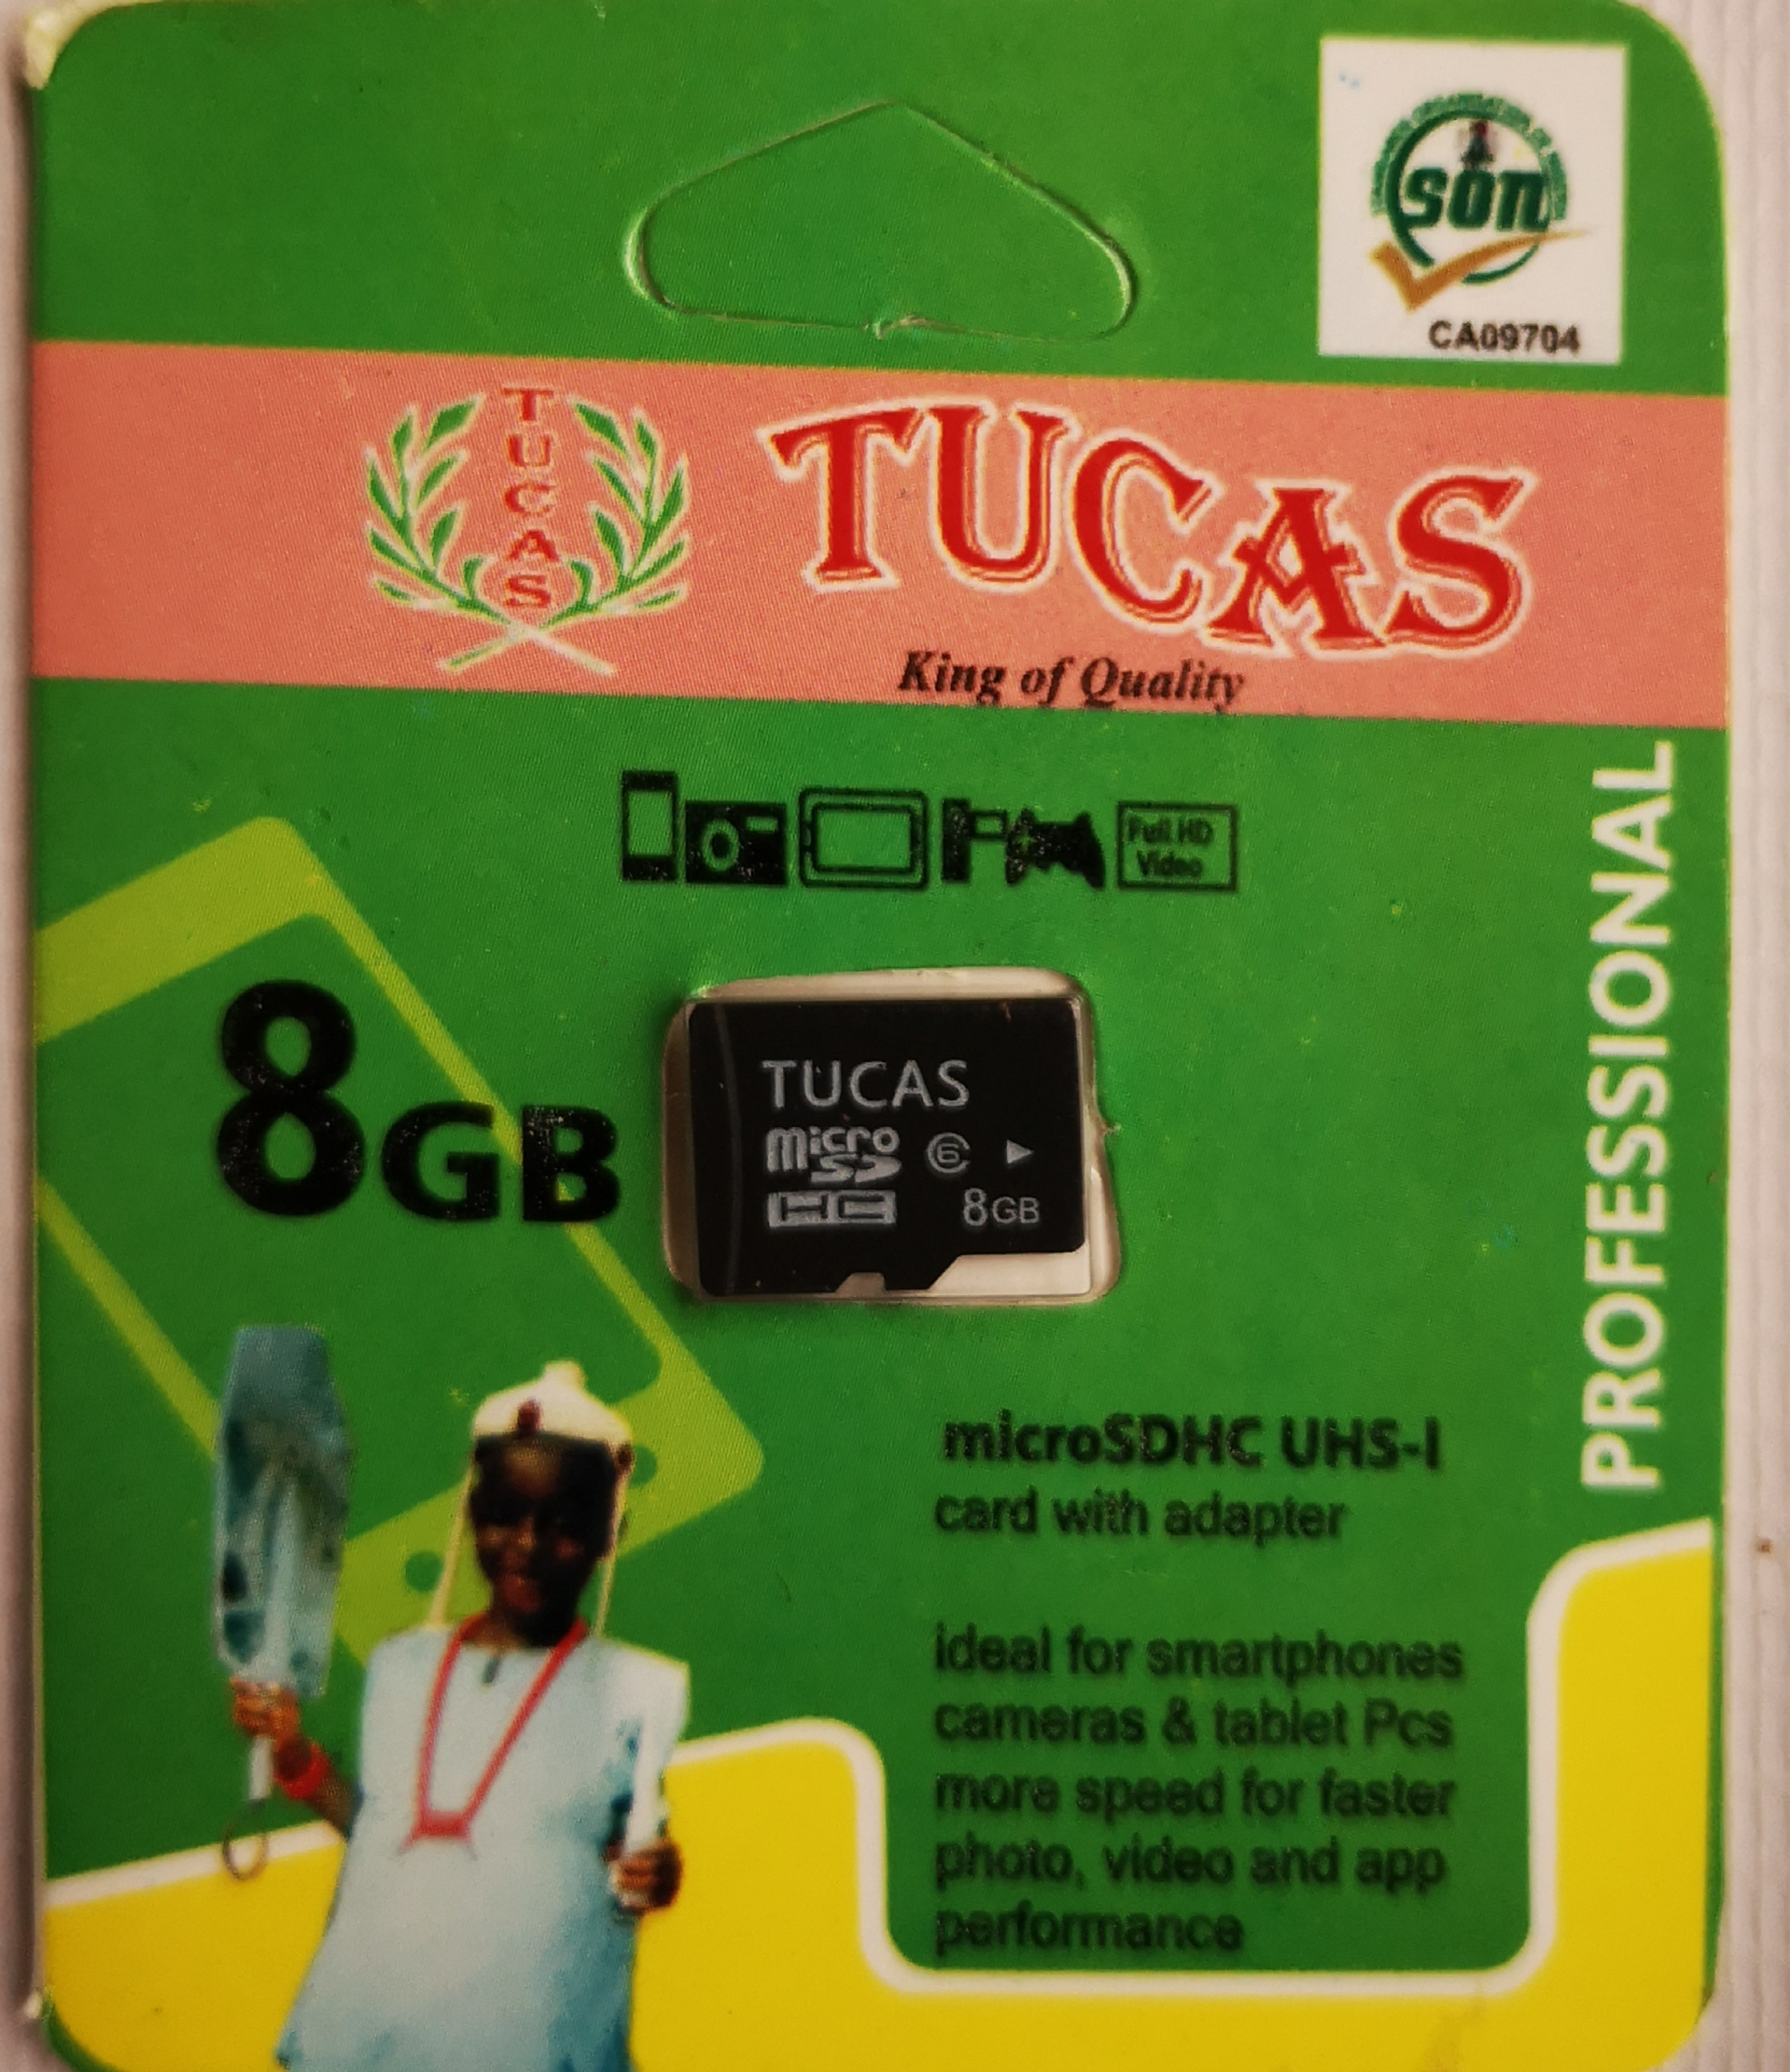 Tucas 8gb memory card mini pack